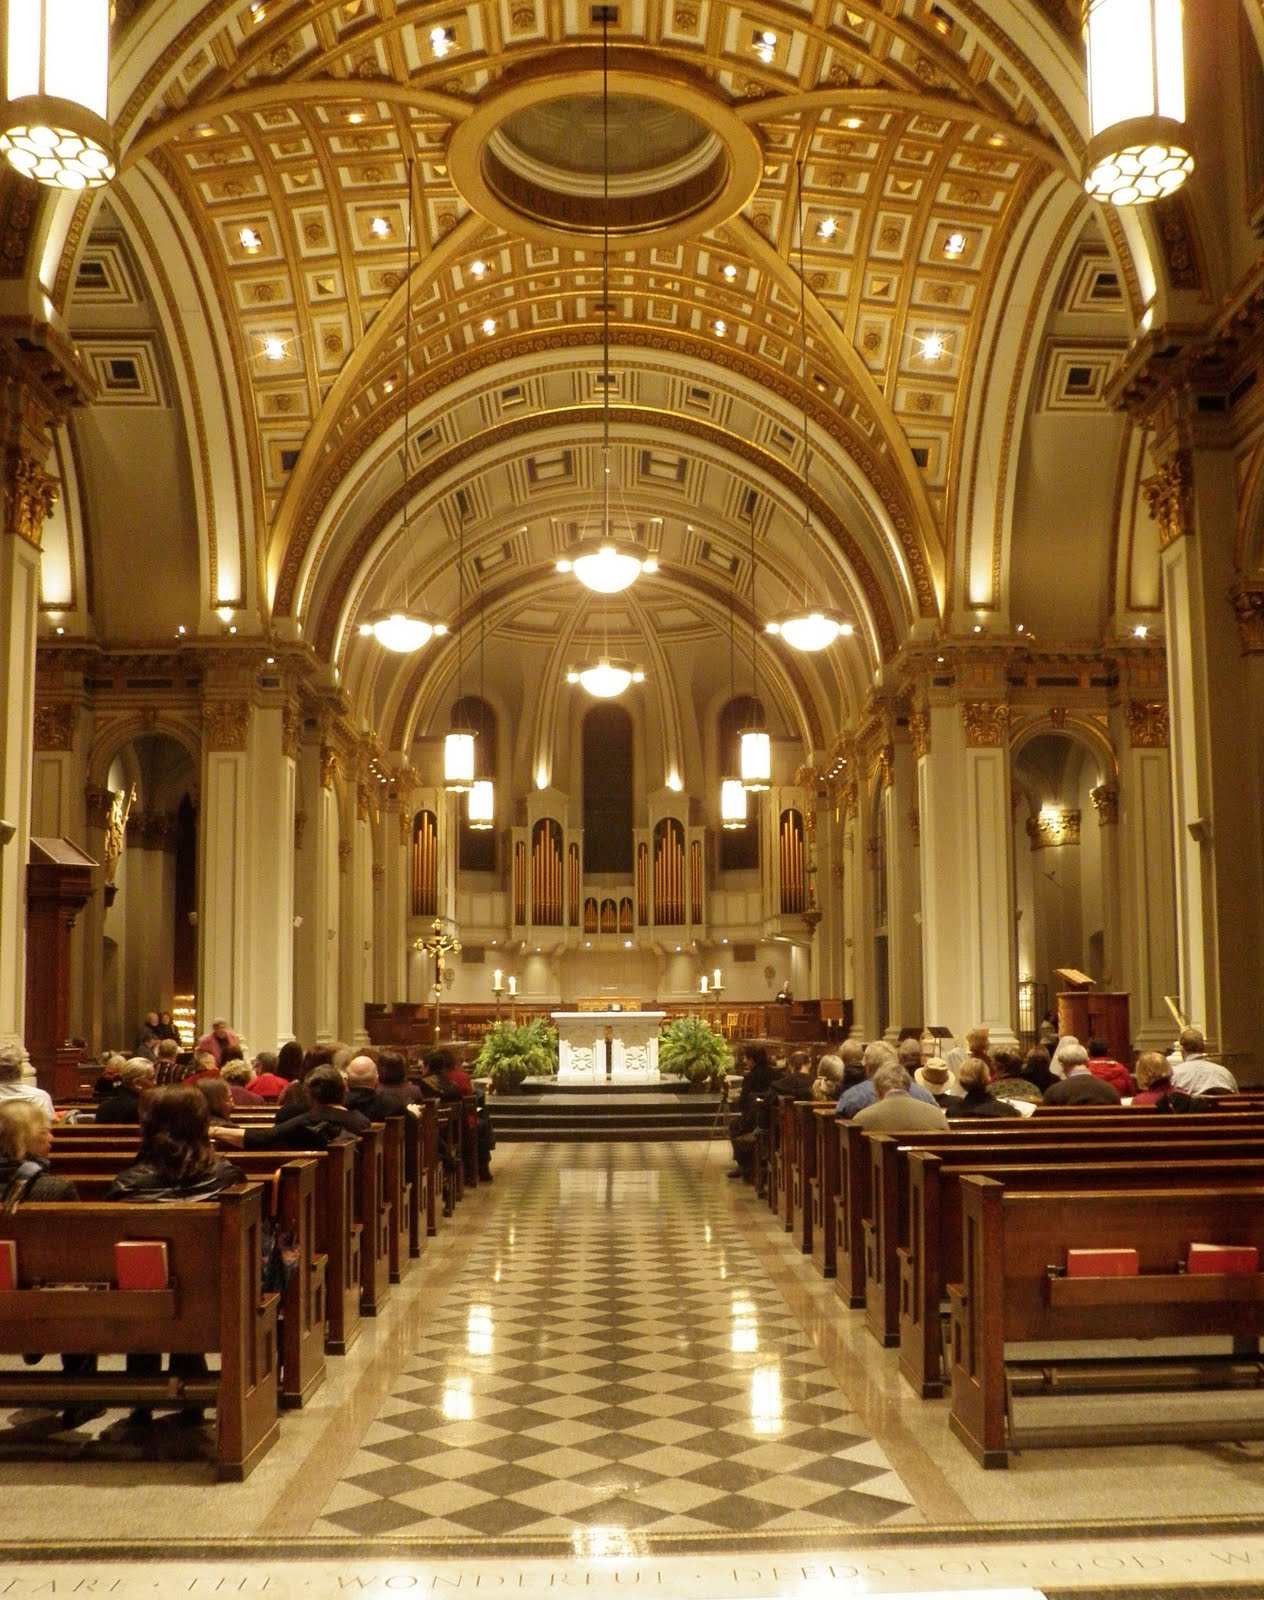 Suzzallo Library Seattle, Pacific Northwest Seasons: Seattle's St. James Cathedral: Medieval ...